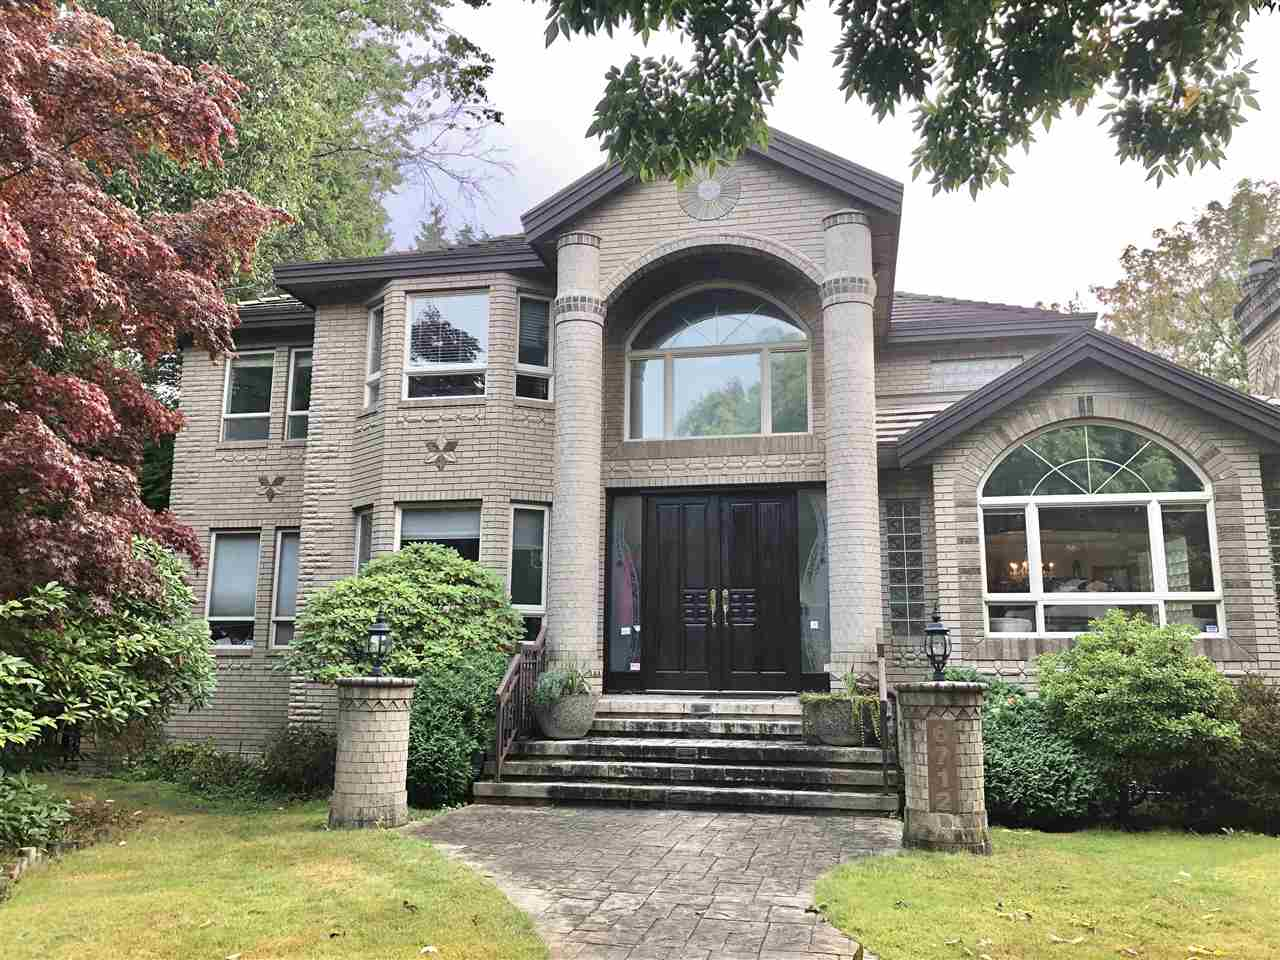 6712 SELKIRK STREET - South Granville House/Single Family for sale, 7 Bedrooms (R2498645)